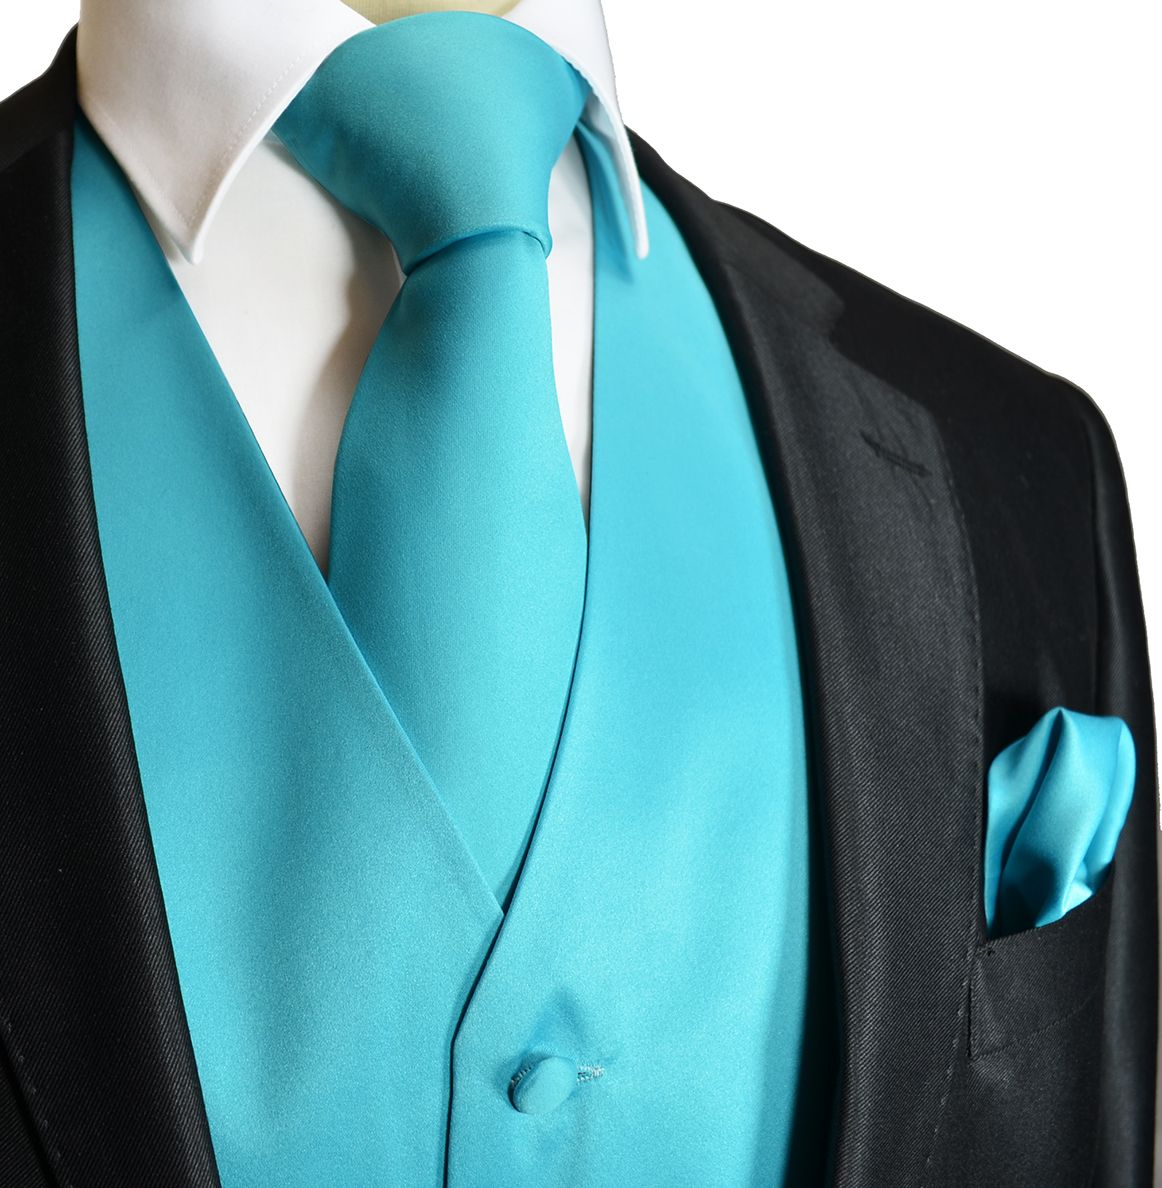 Solid Turquoise Tuxedo Vest Set (Q10-E) My honey would look so good ...